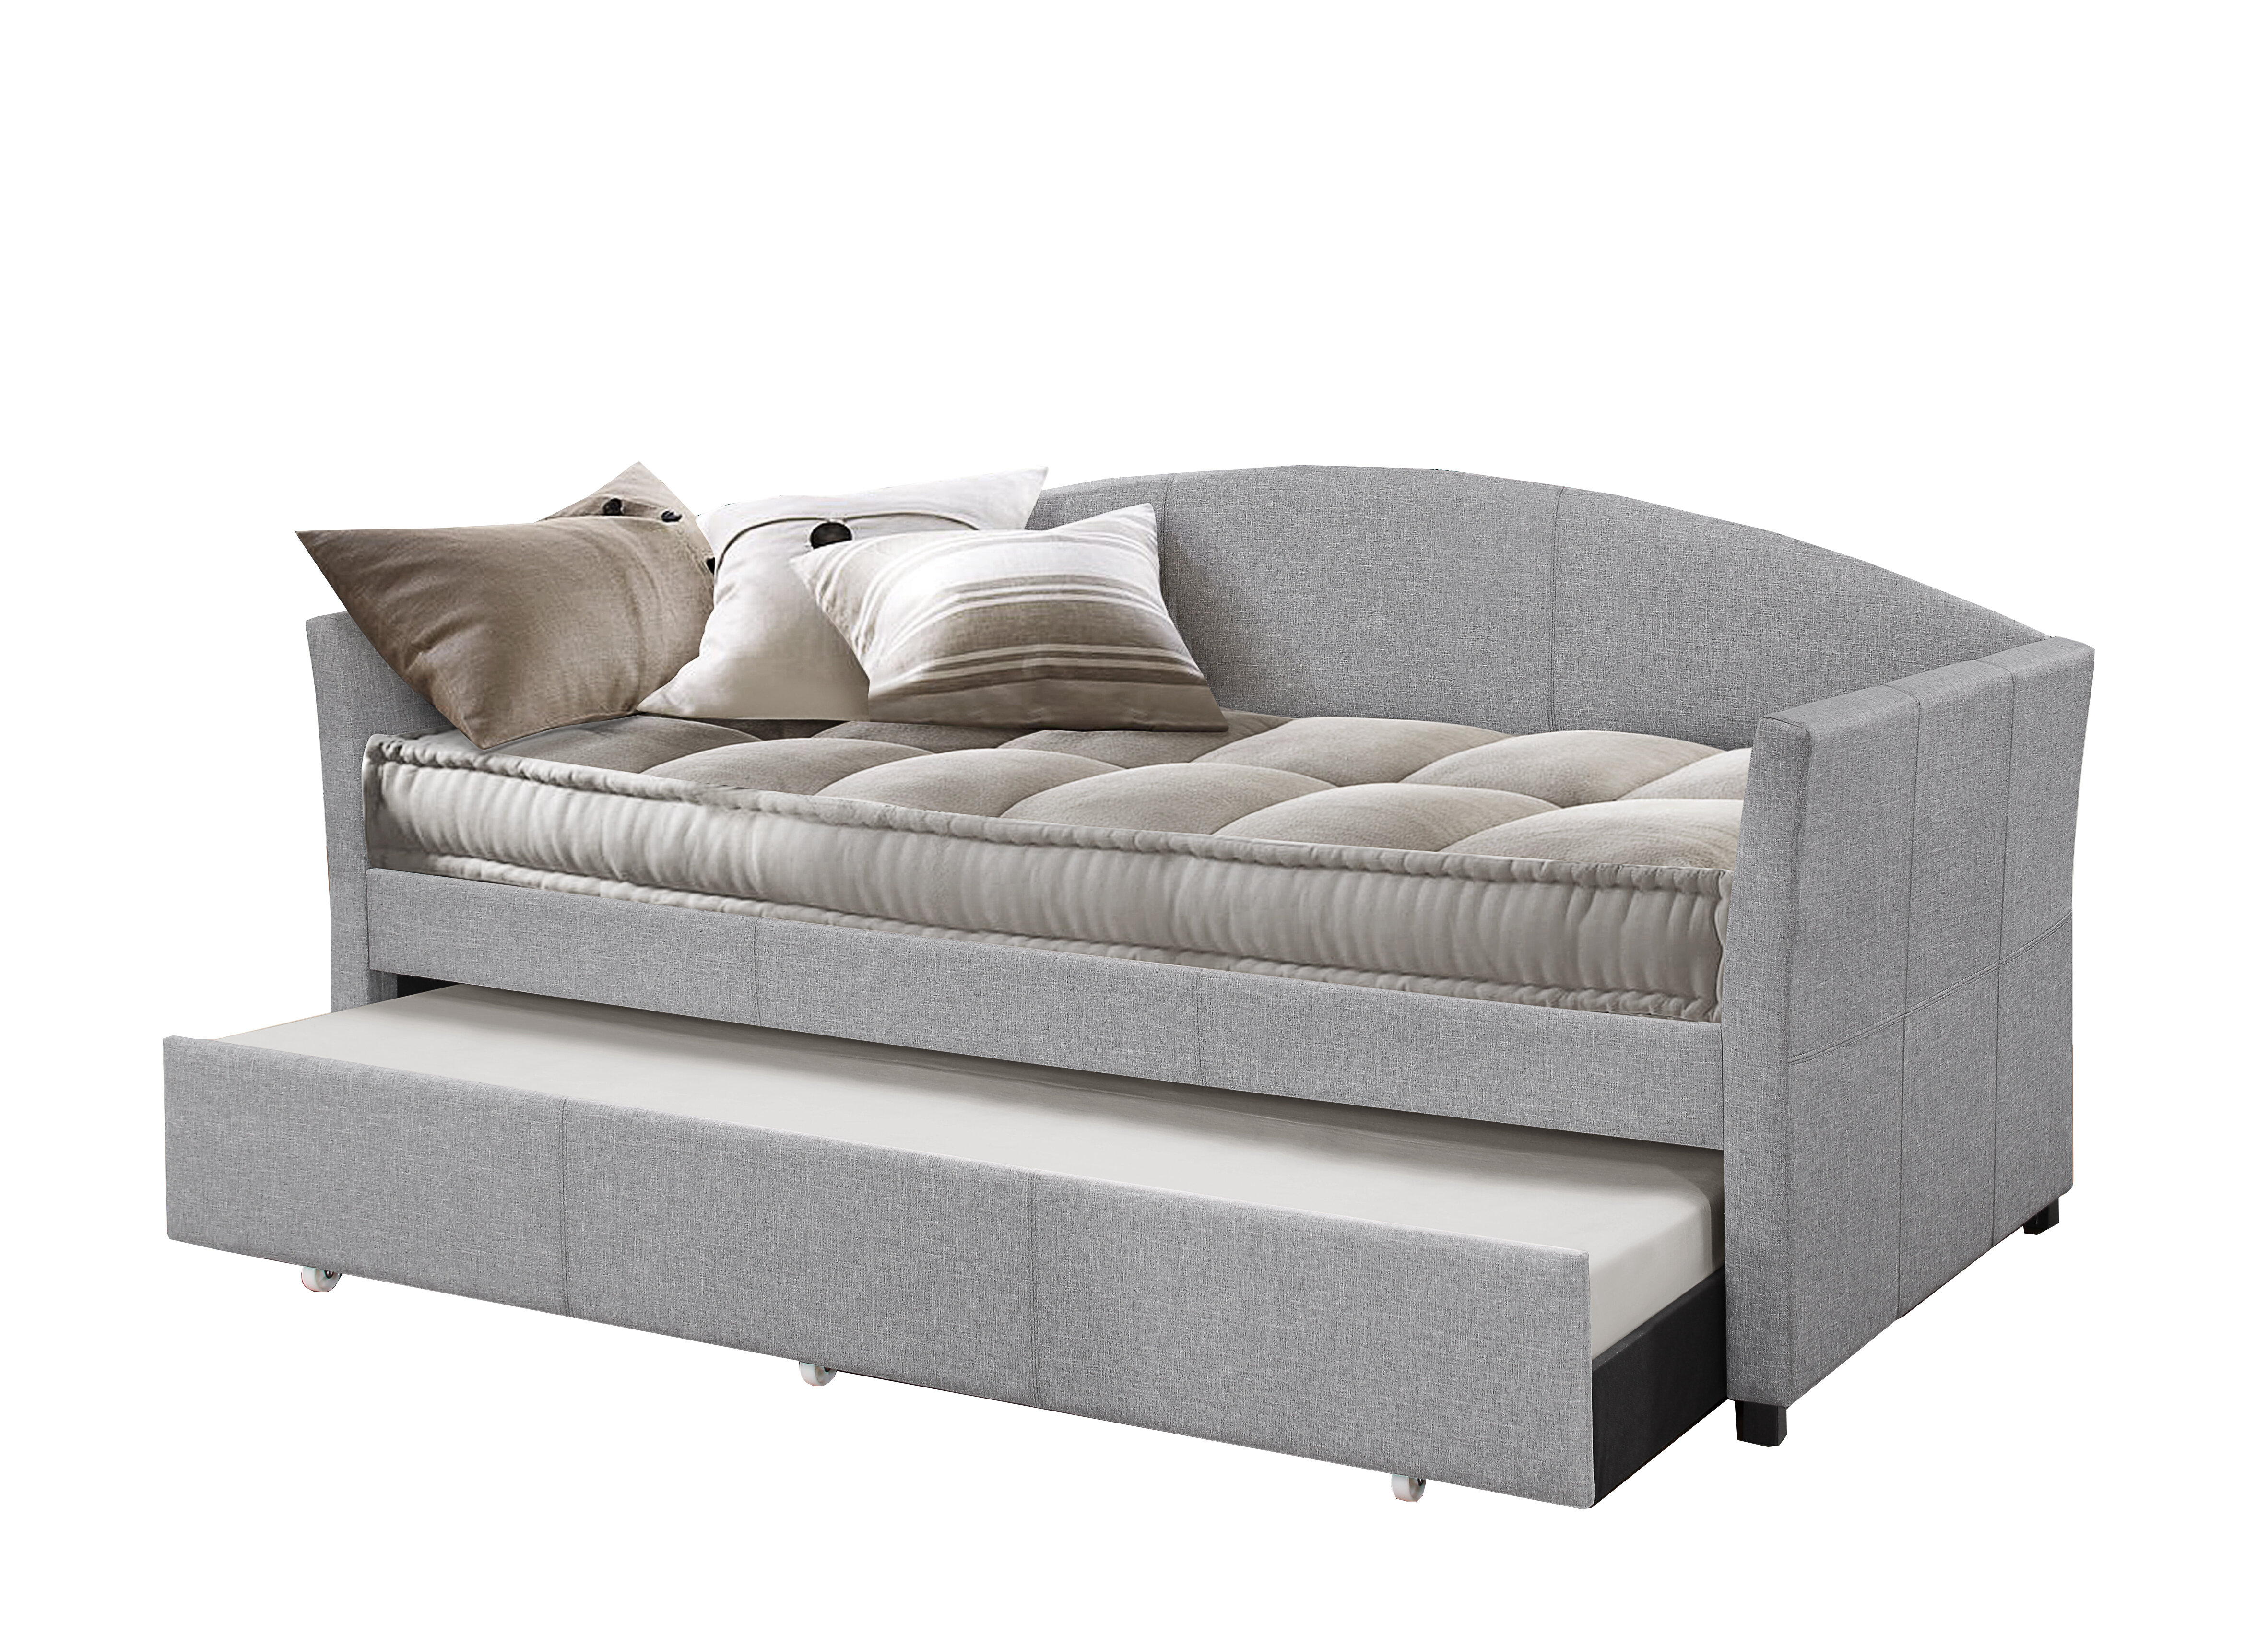 Alvina Upholstered Daybed With Trundle Reviews Birch Lane